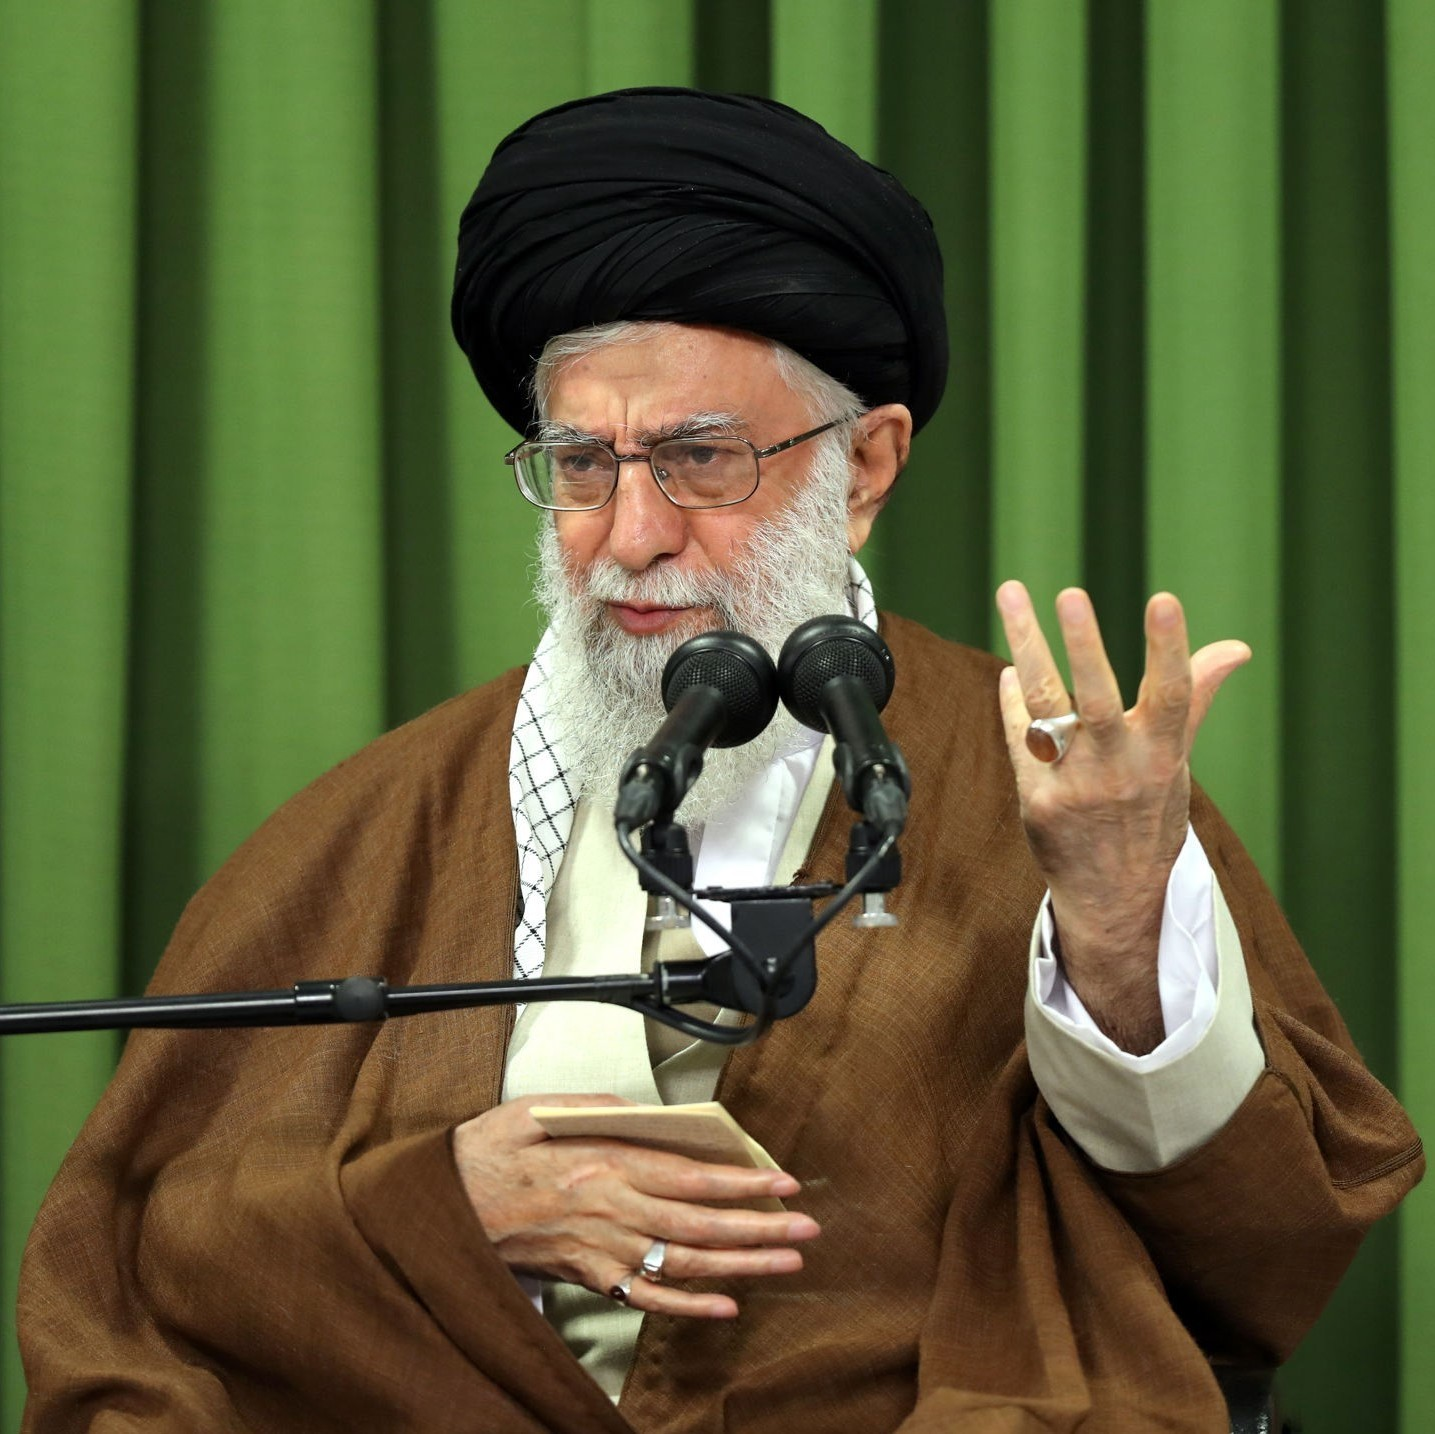 Iran's Supreme Leader Ayatollah Ali Khamanei speaks during his meeting with students in Tehran, Iran in October. Photo by Iranian Leader's Press Office - Handout